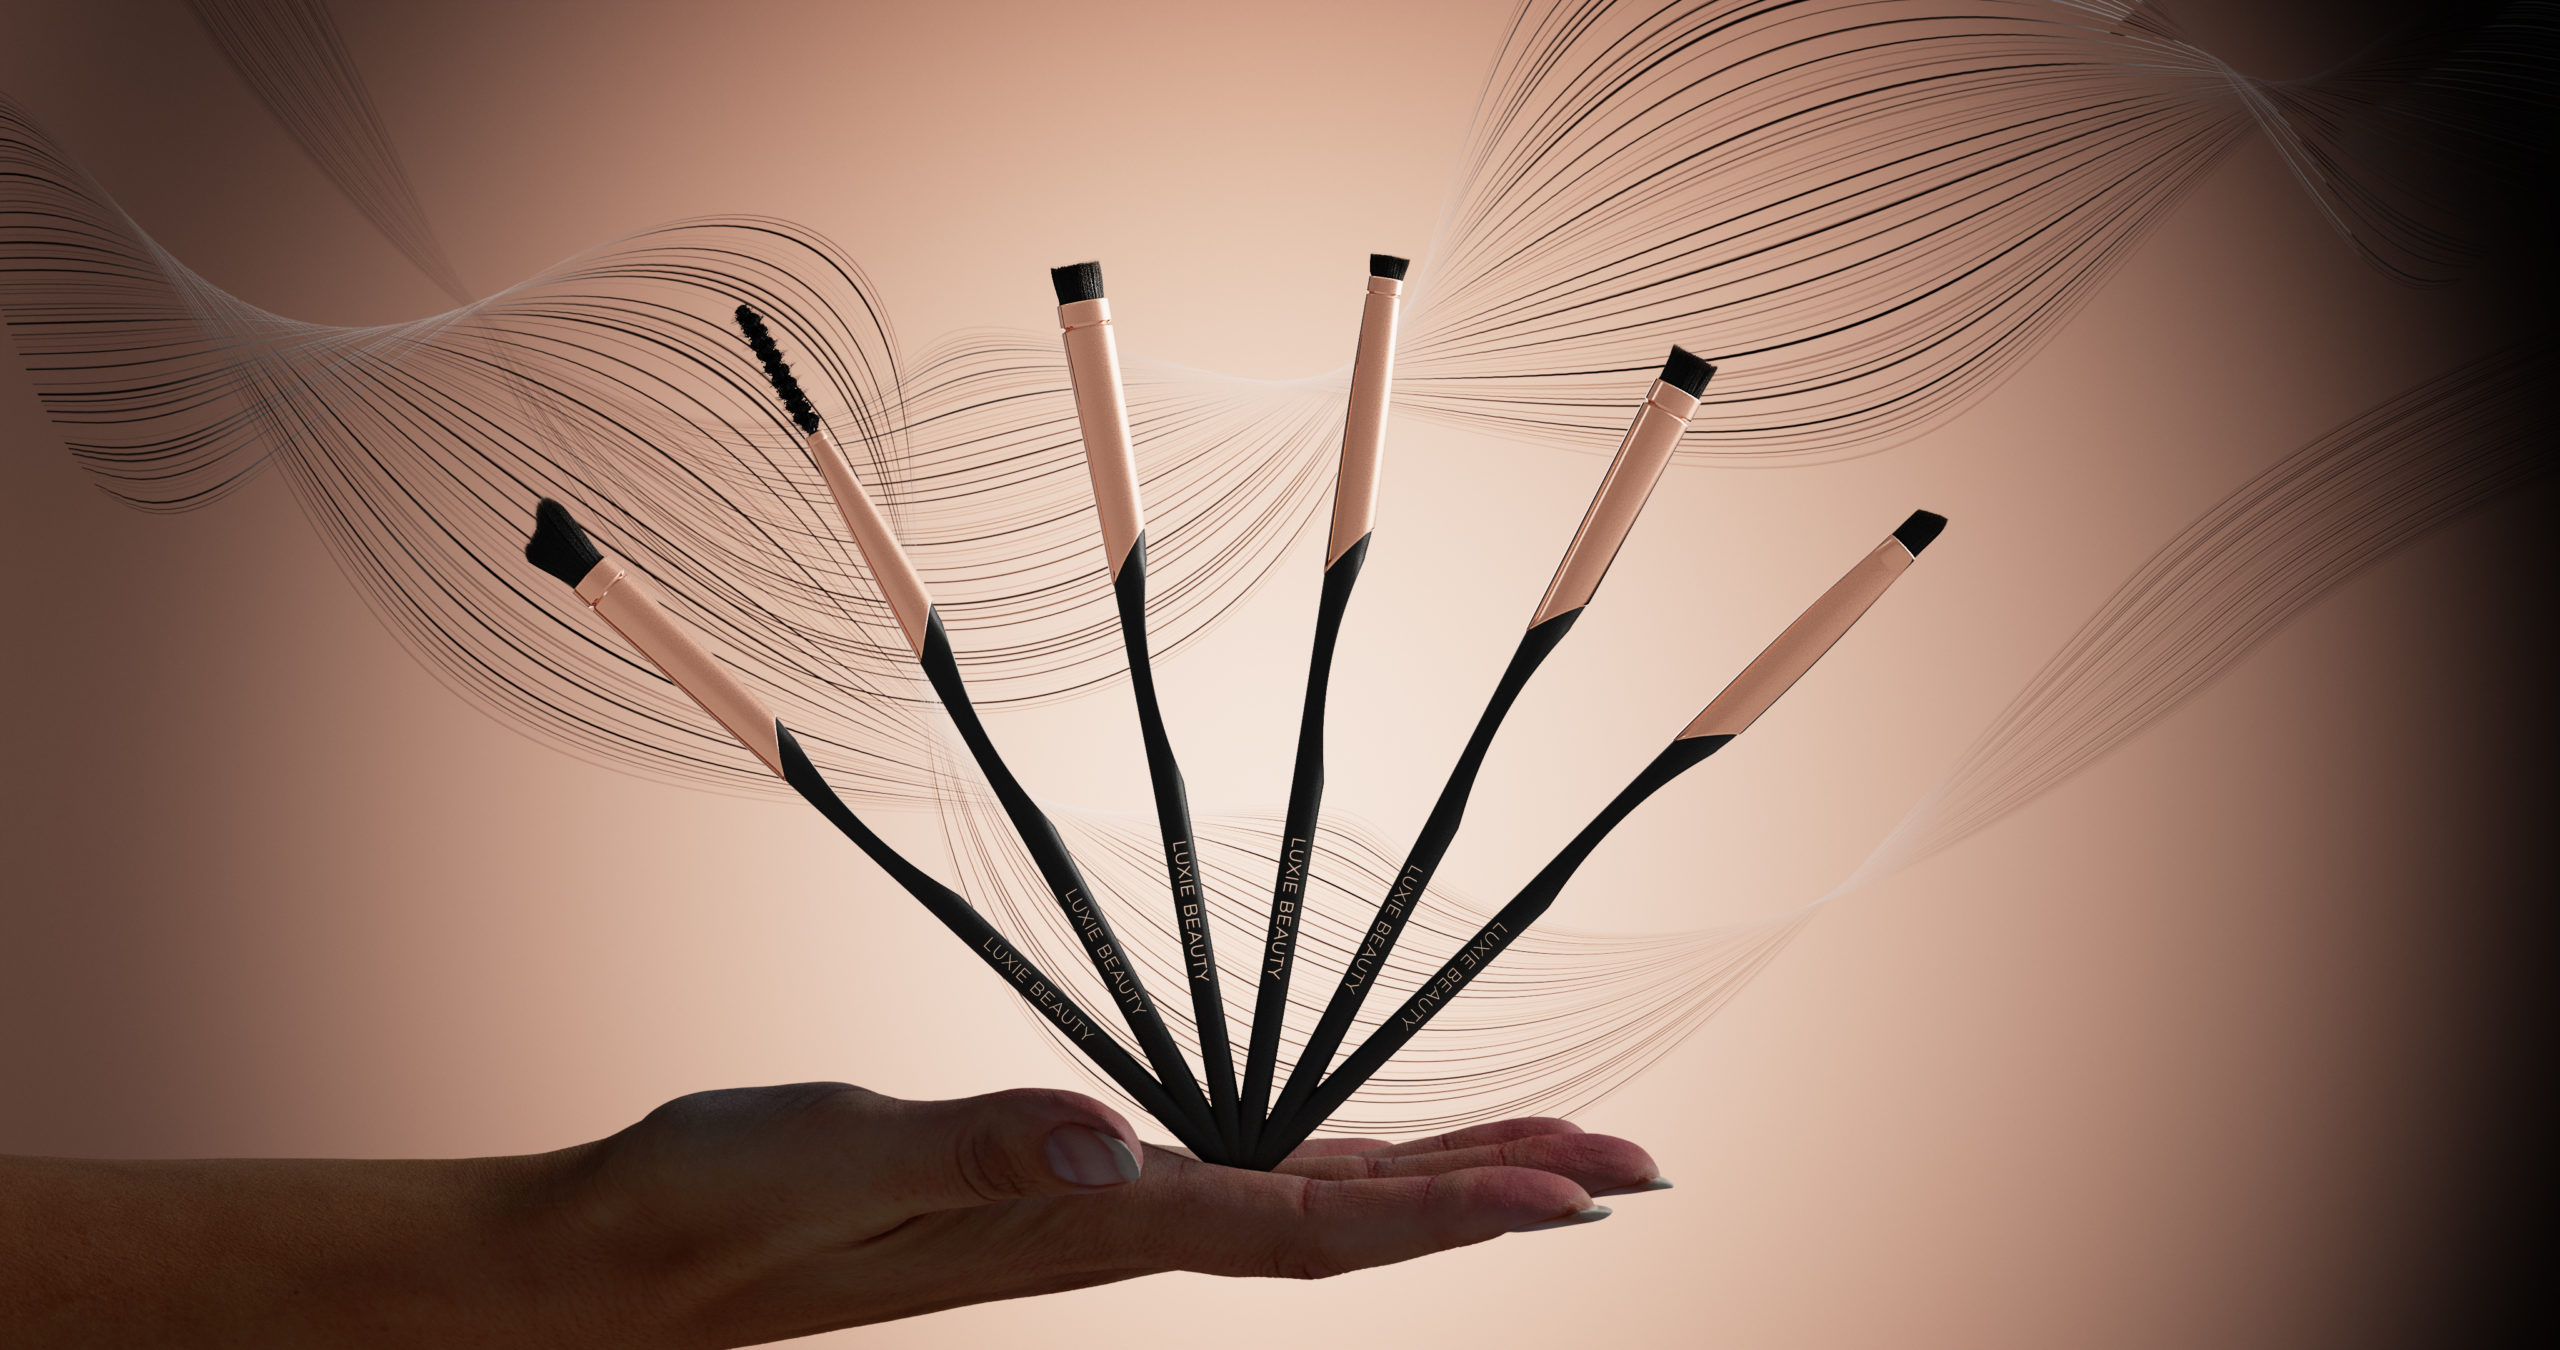 Wenbo Zhao-Luxary Makeup Brushes-Luxie Beauty-Hand holding burshes and floating lines in background